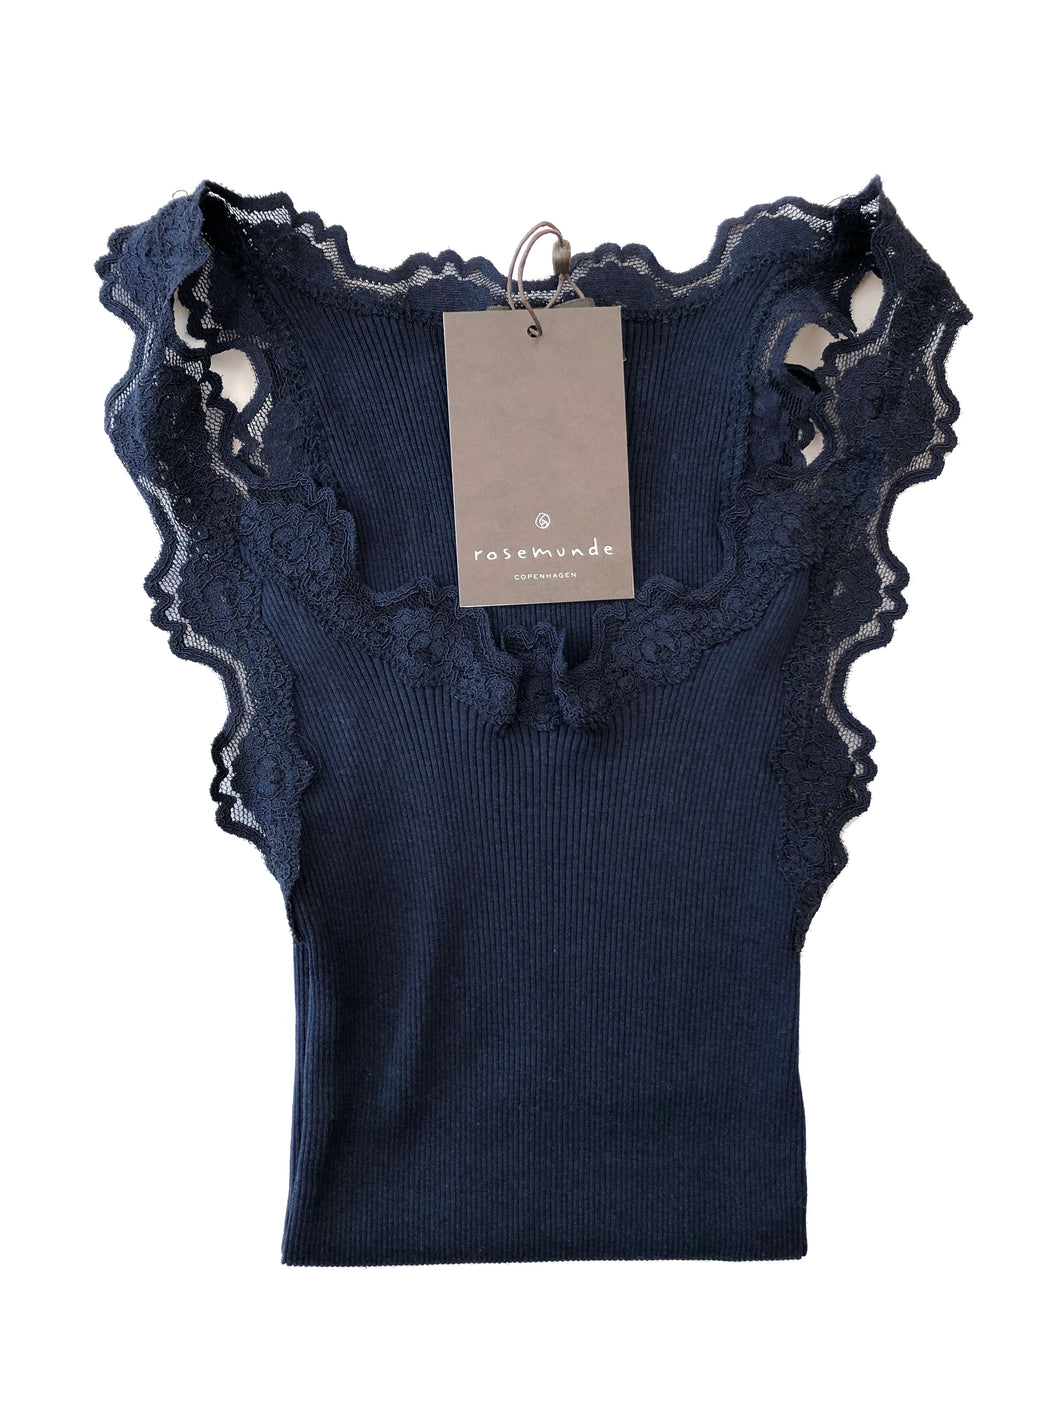 Top Rosemunde navy blau